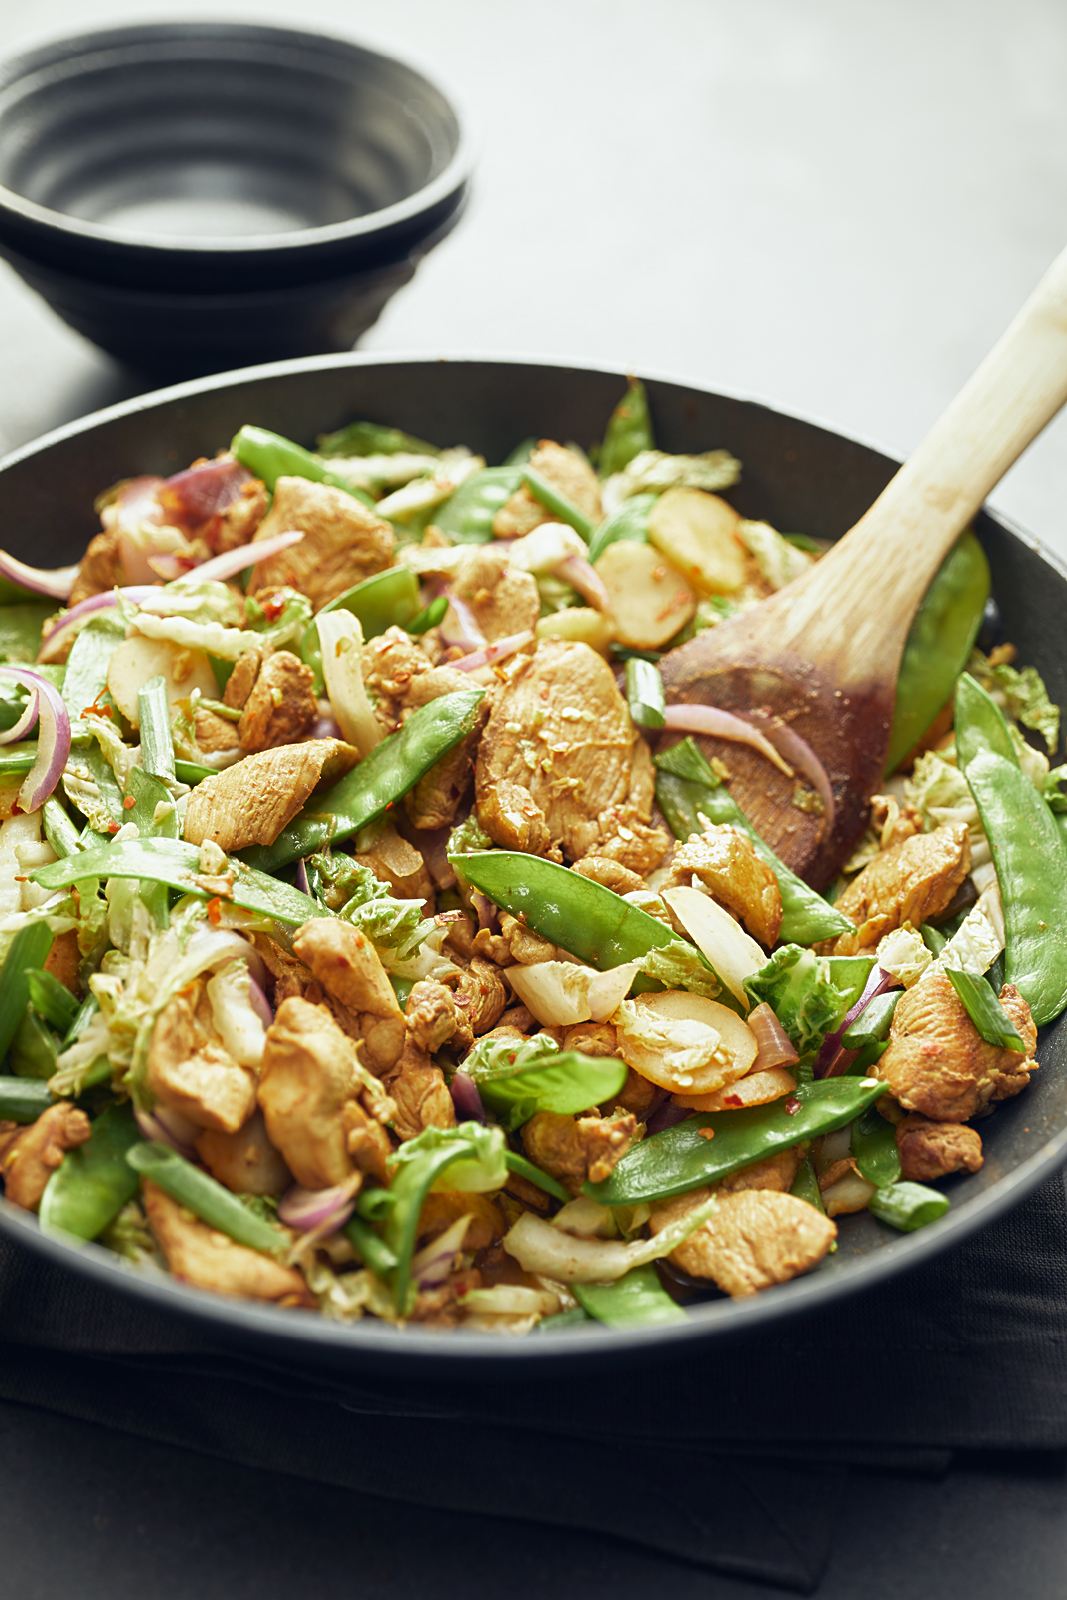 CHICKEN STIR FRY WITH WATER CHESTNUTS